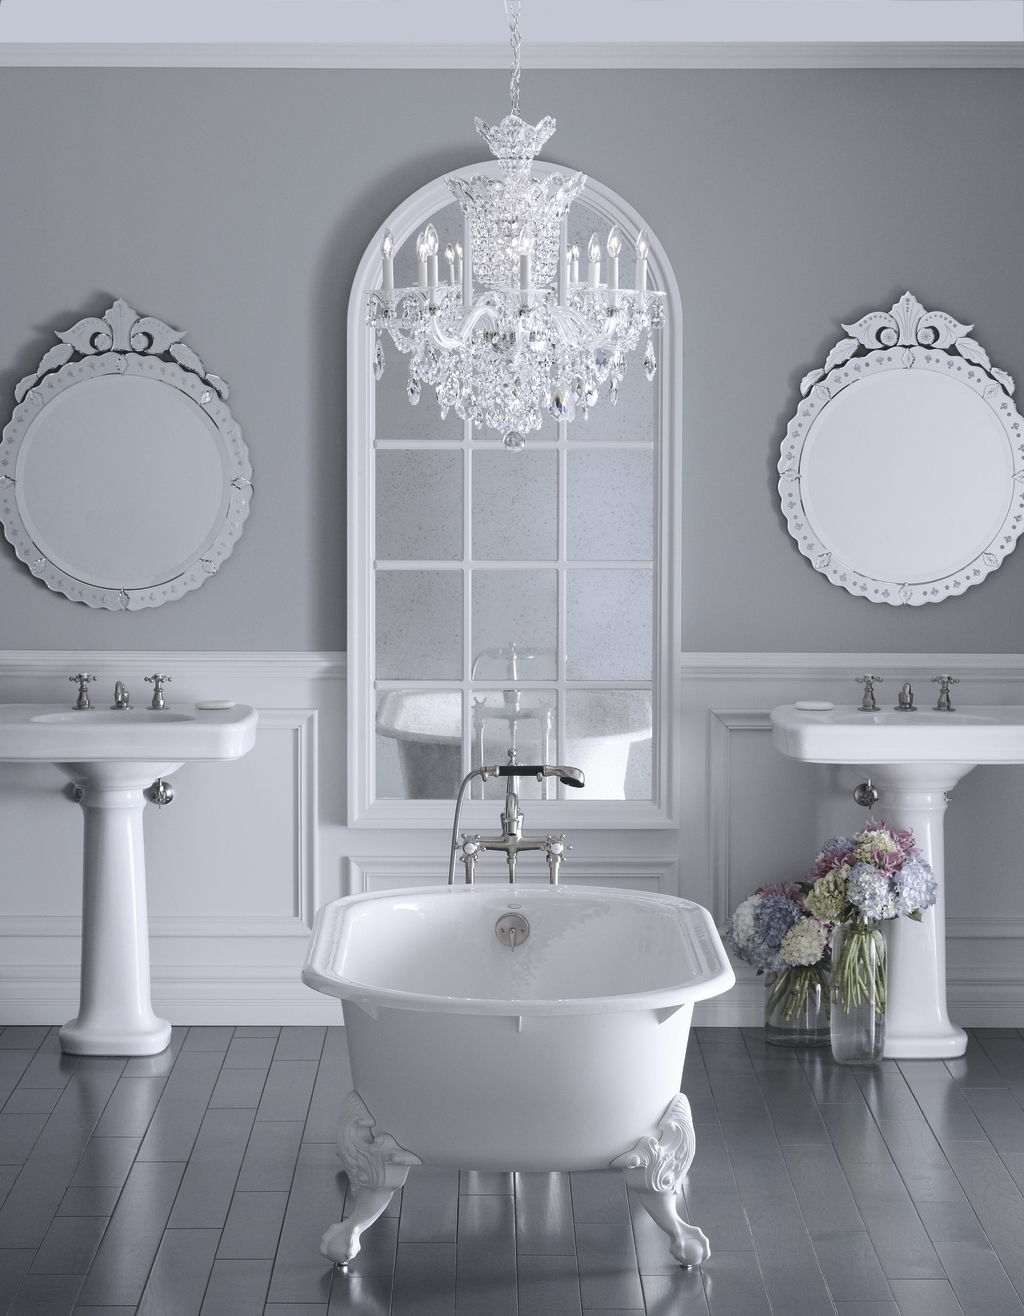 Trendy Bathroom: Bathroom Chandeliers For Beautiful And Elegant Bathroom Intended For Chandeliers For The Bathroom (View 13 of 15)